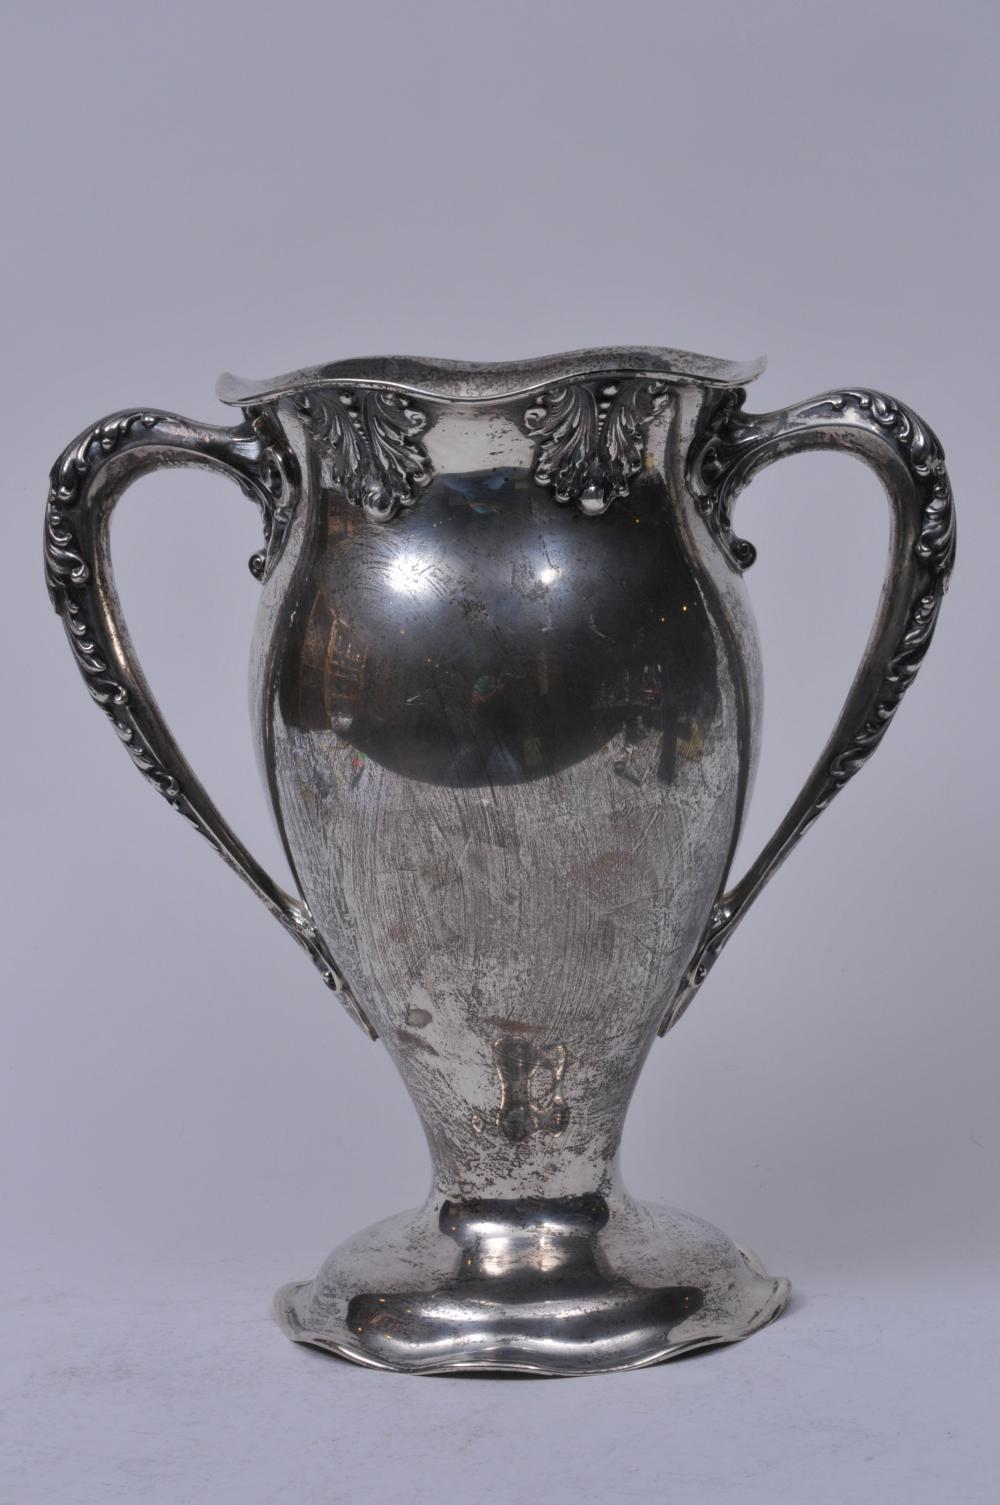 "Lot 256: Sterling silver two handled trophy. Scalloped top and base. ""Presented to Charles M. Maury by Fellow Members of The New York Stock Exchange 1901"". Good condition. 11"" high. 10-1/2"" wide. 41.5 ozt."